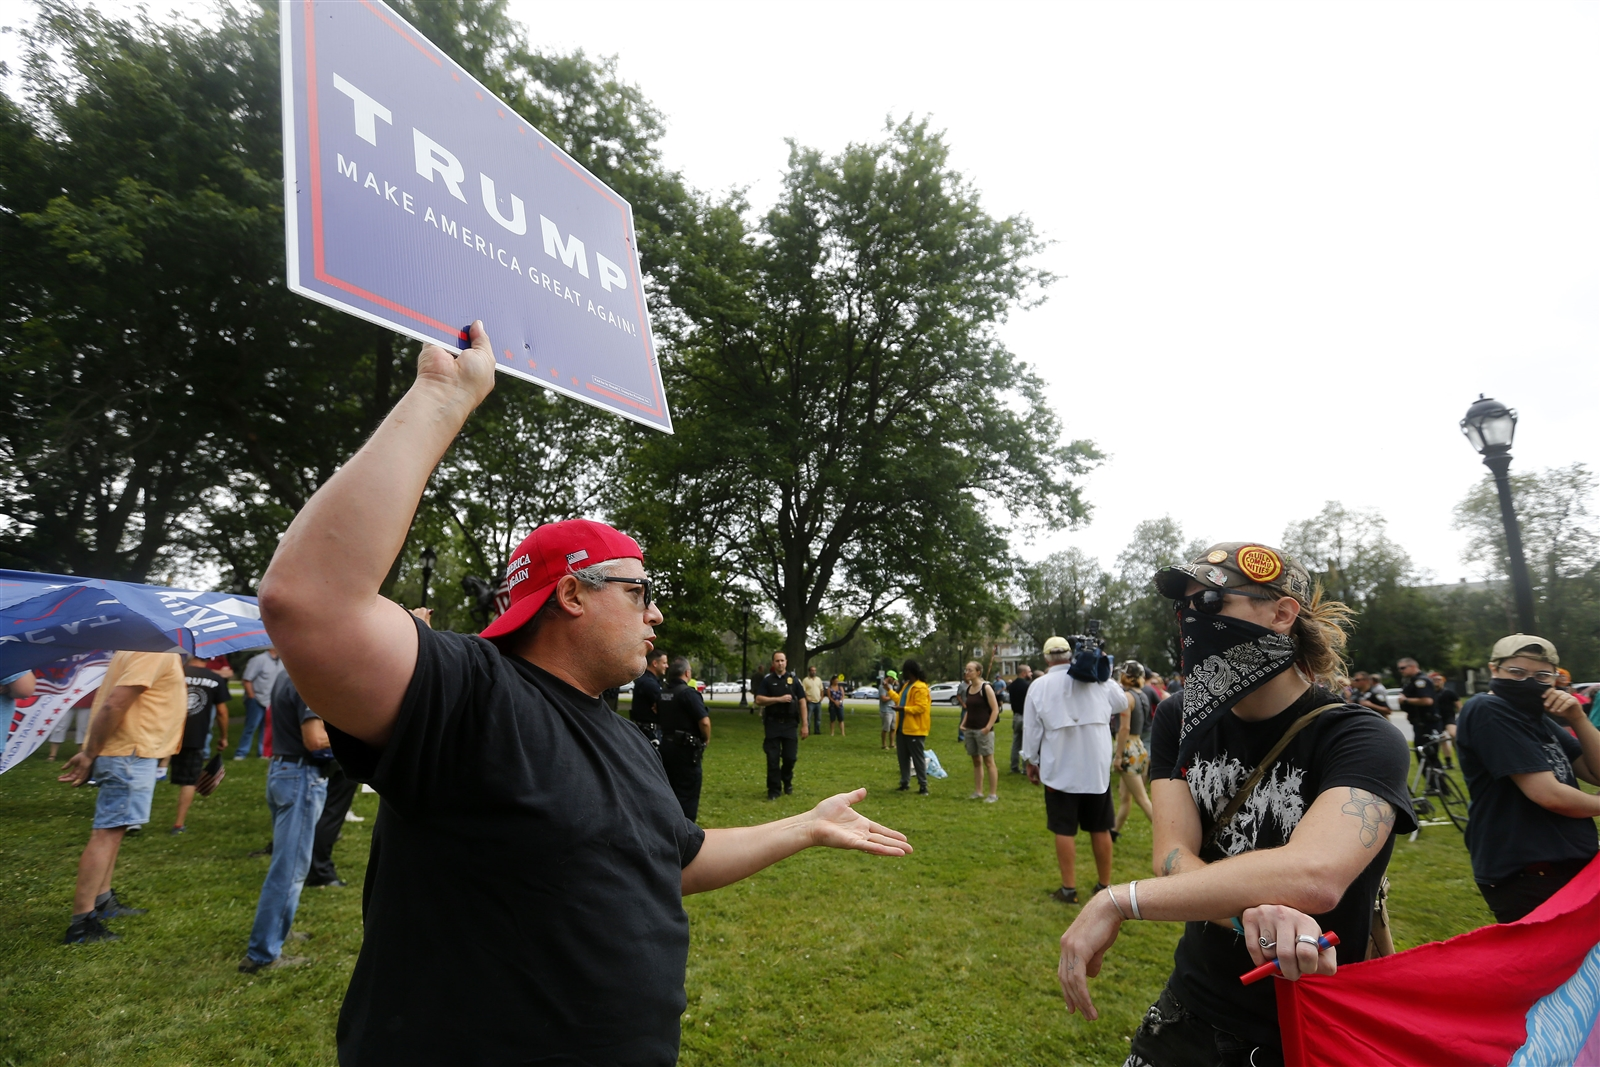 Buffalo groups held two rallies on Sunday, one supporting President Donald Trump in Colonial Circle, and one against Trump on Bidwell Parkway. Tensions were high, with a fist-fight erupting during one of the rallies.